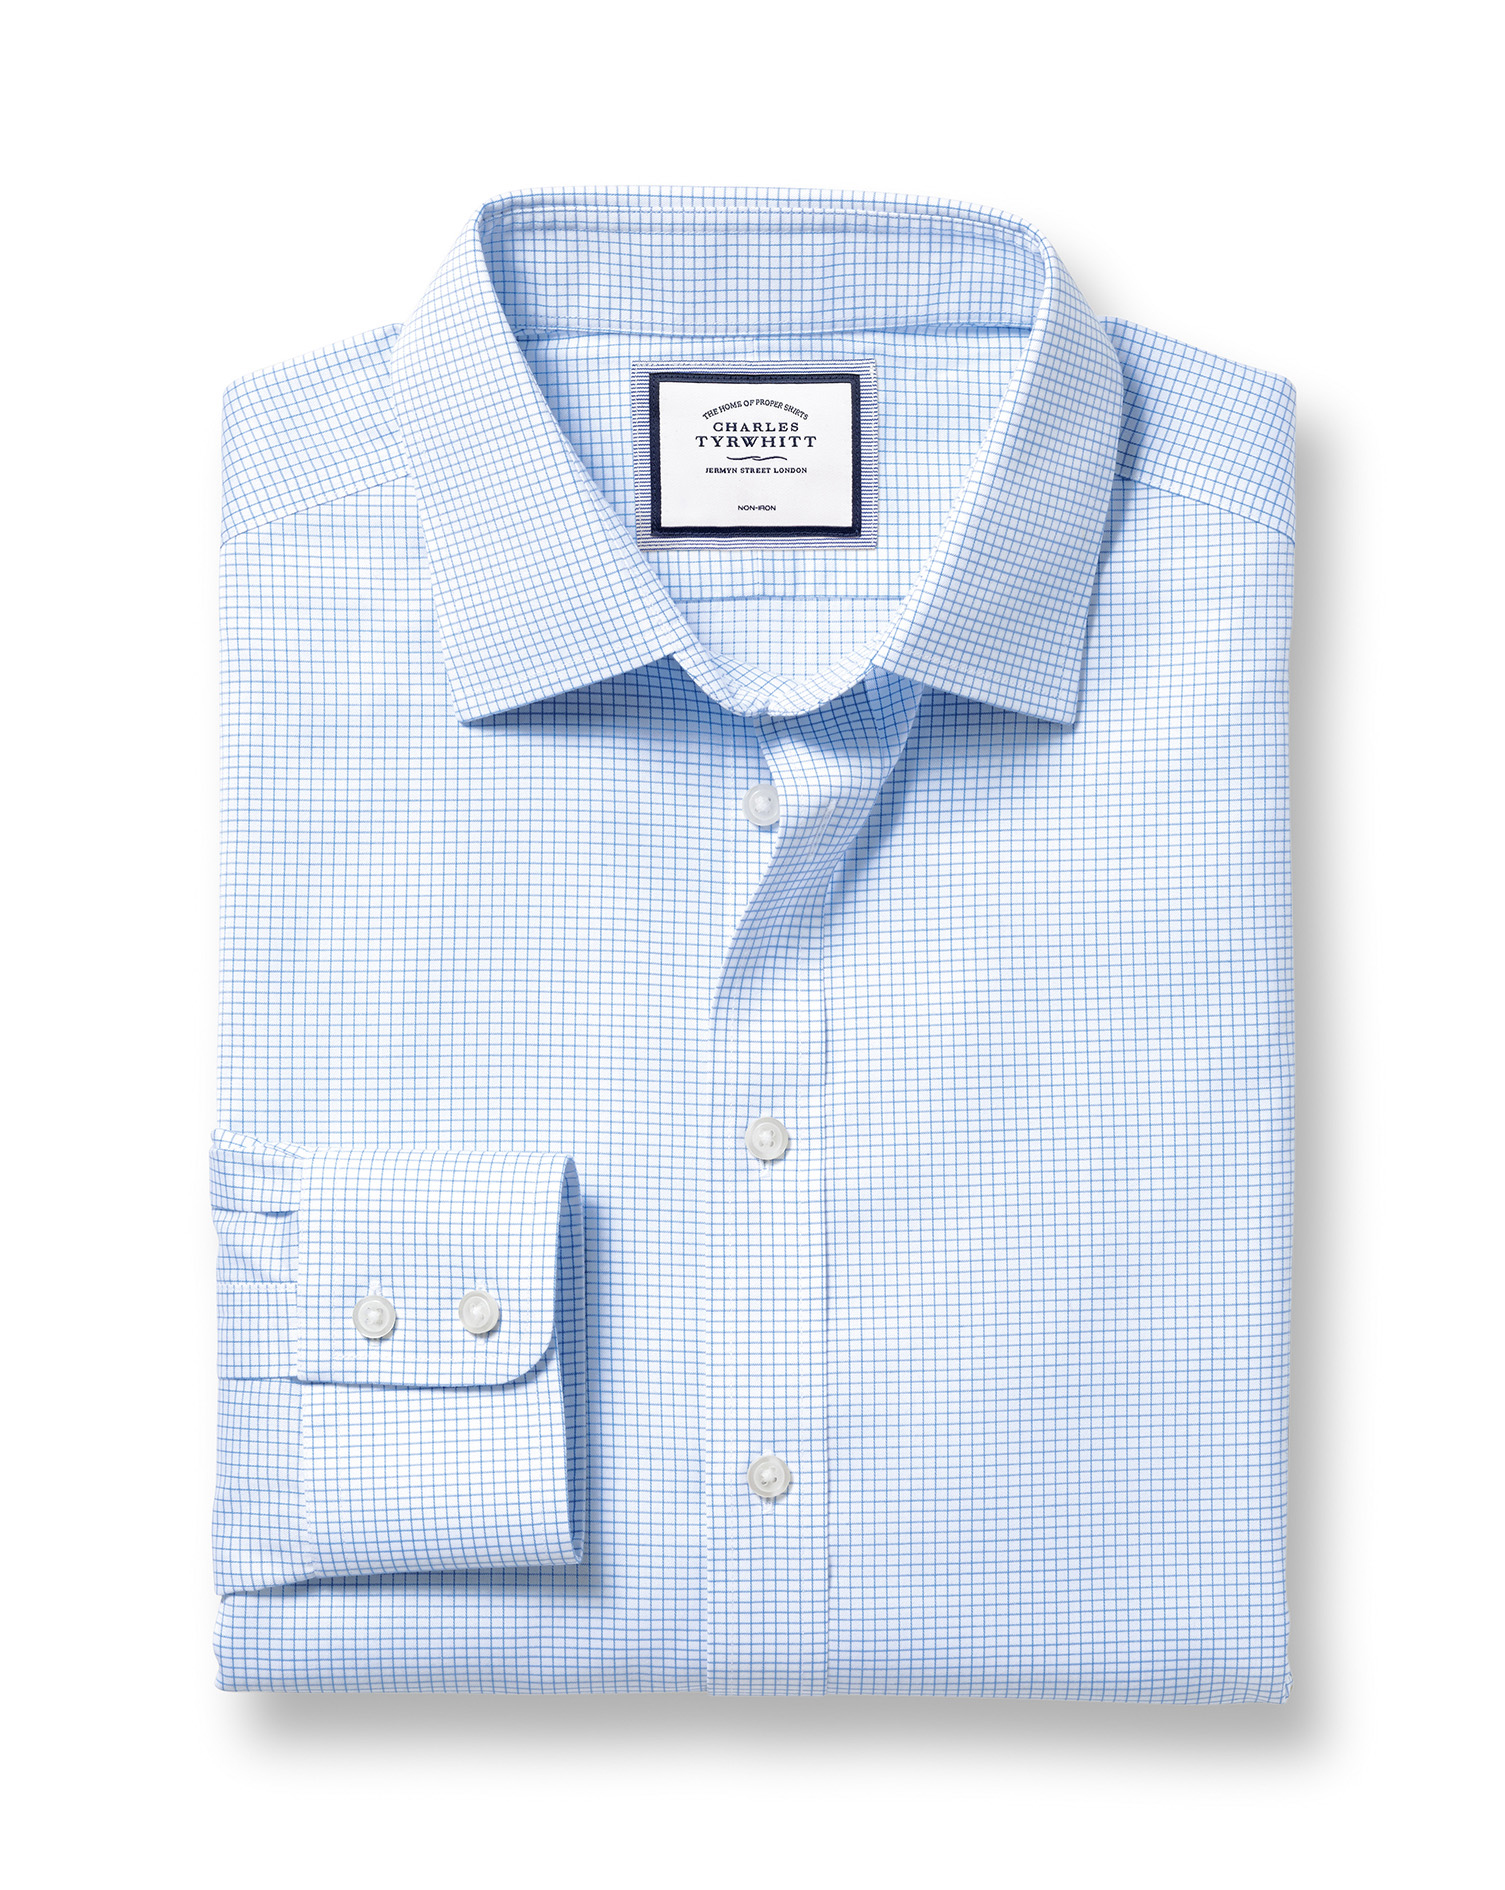 Classic Fit Non-Iron Twill Mini Grid Check Sky Blue Cotton Formal Shirt Single Cuff Size 17/36 by Ch